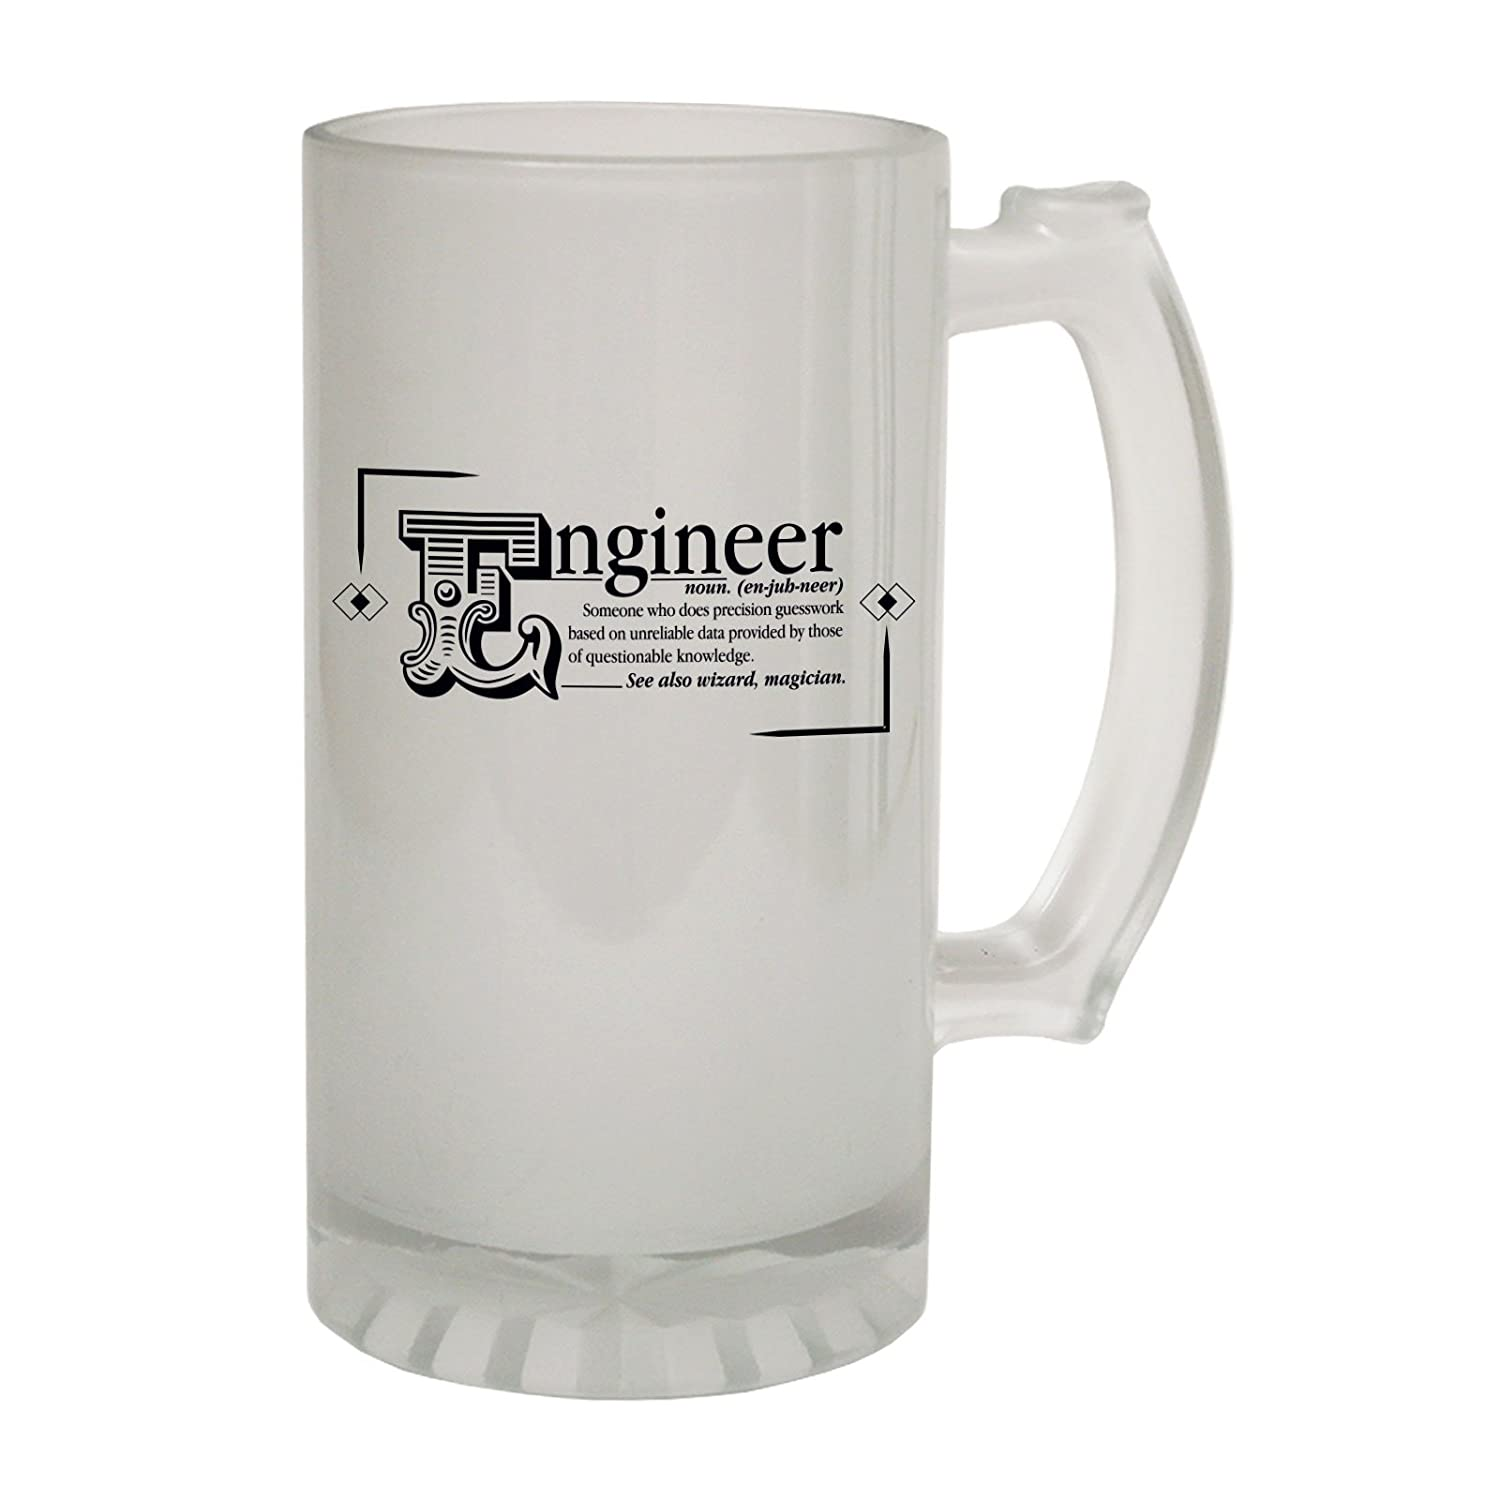 123t Frosted Glass Beer Stein - Engineer Noun Geek Nerd - Funny Novelty Birthday